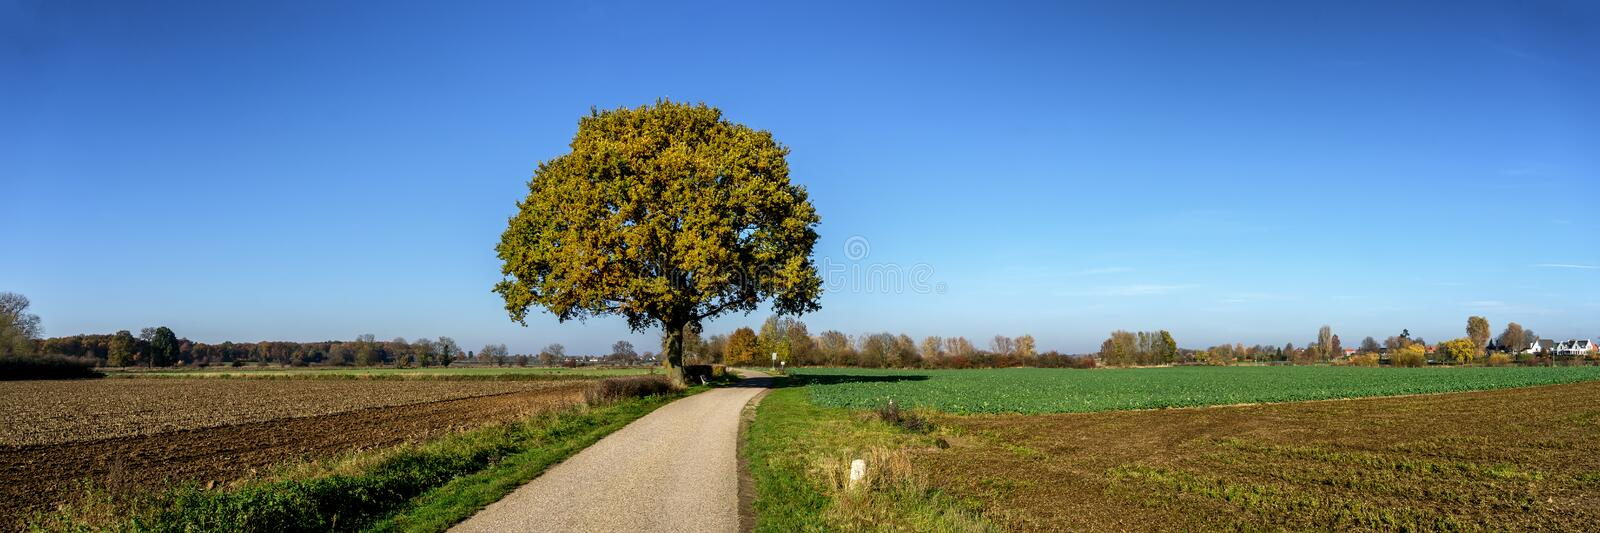 Lonely tree in the November sun near the small village of Papenbeek NL. Close to the Maas river stock photos